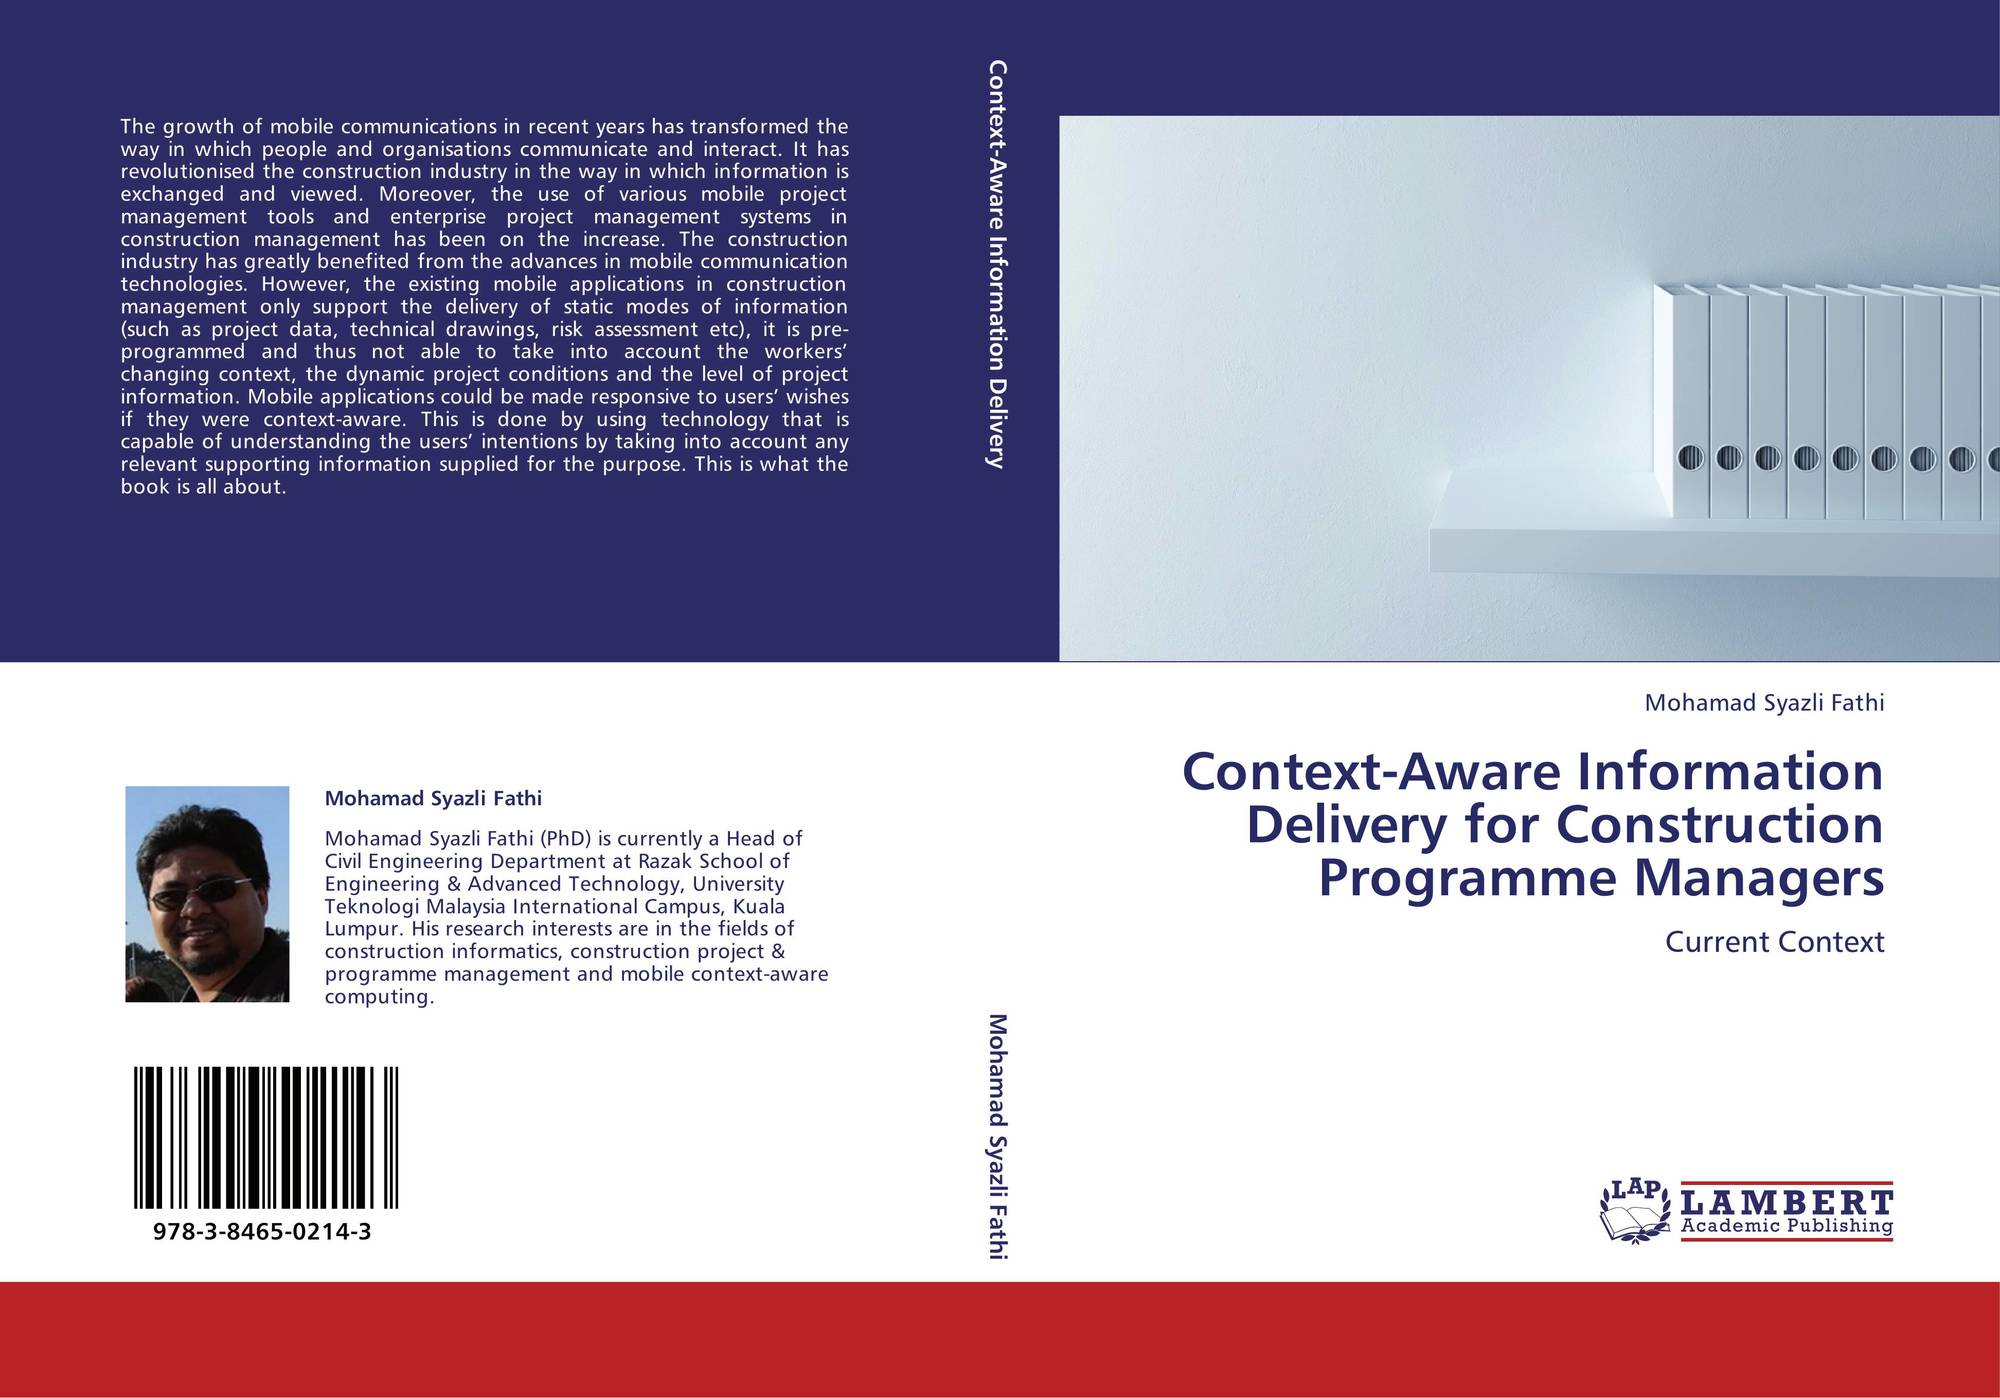 Context-Aware Information Delivery for Construction Programme Managers